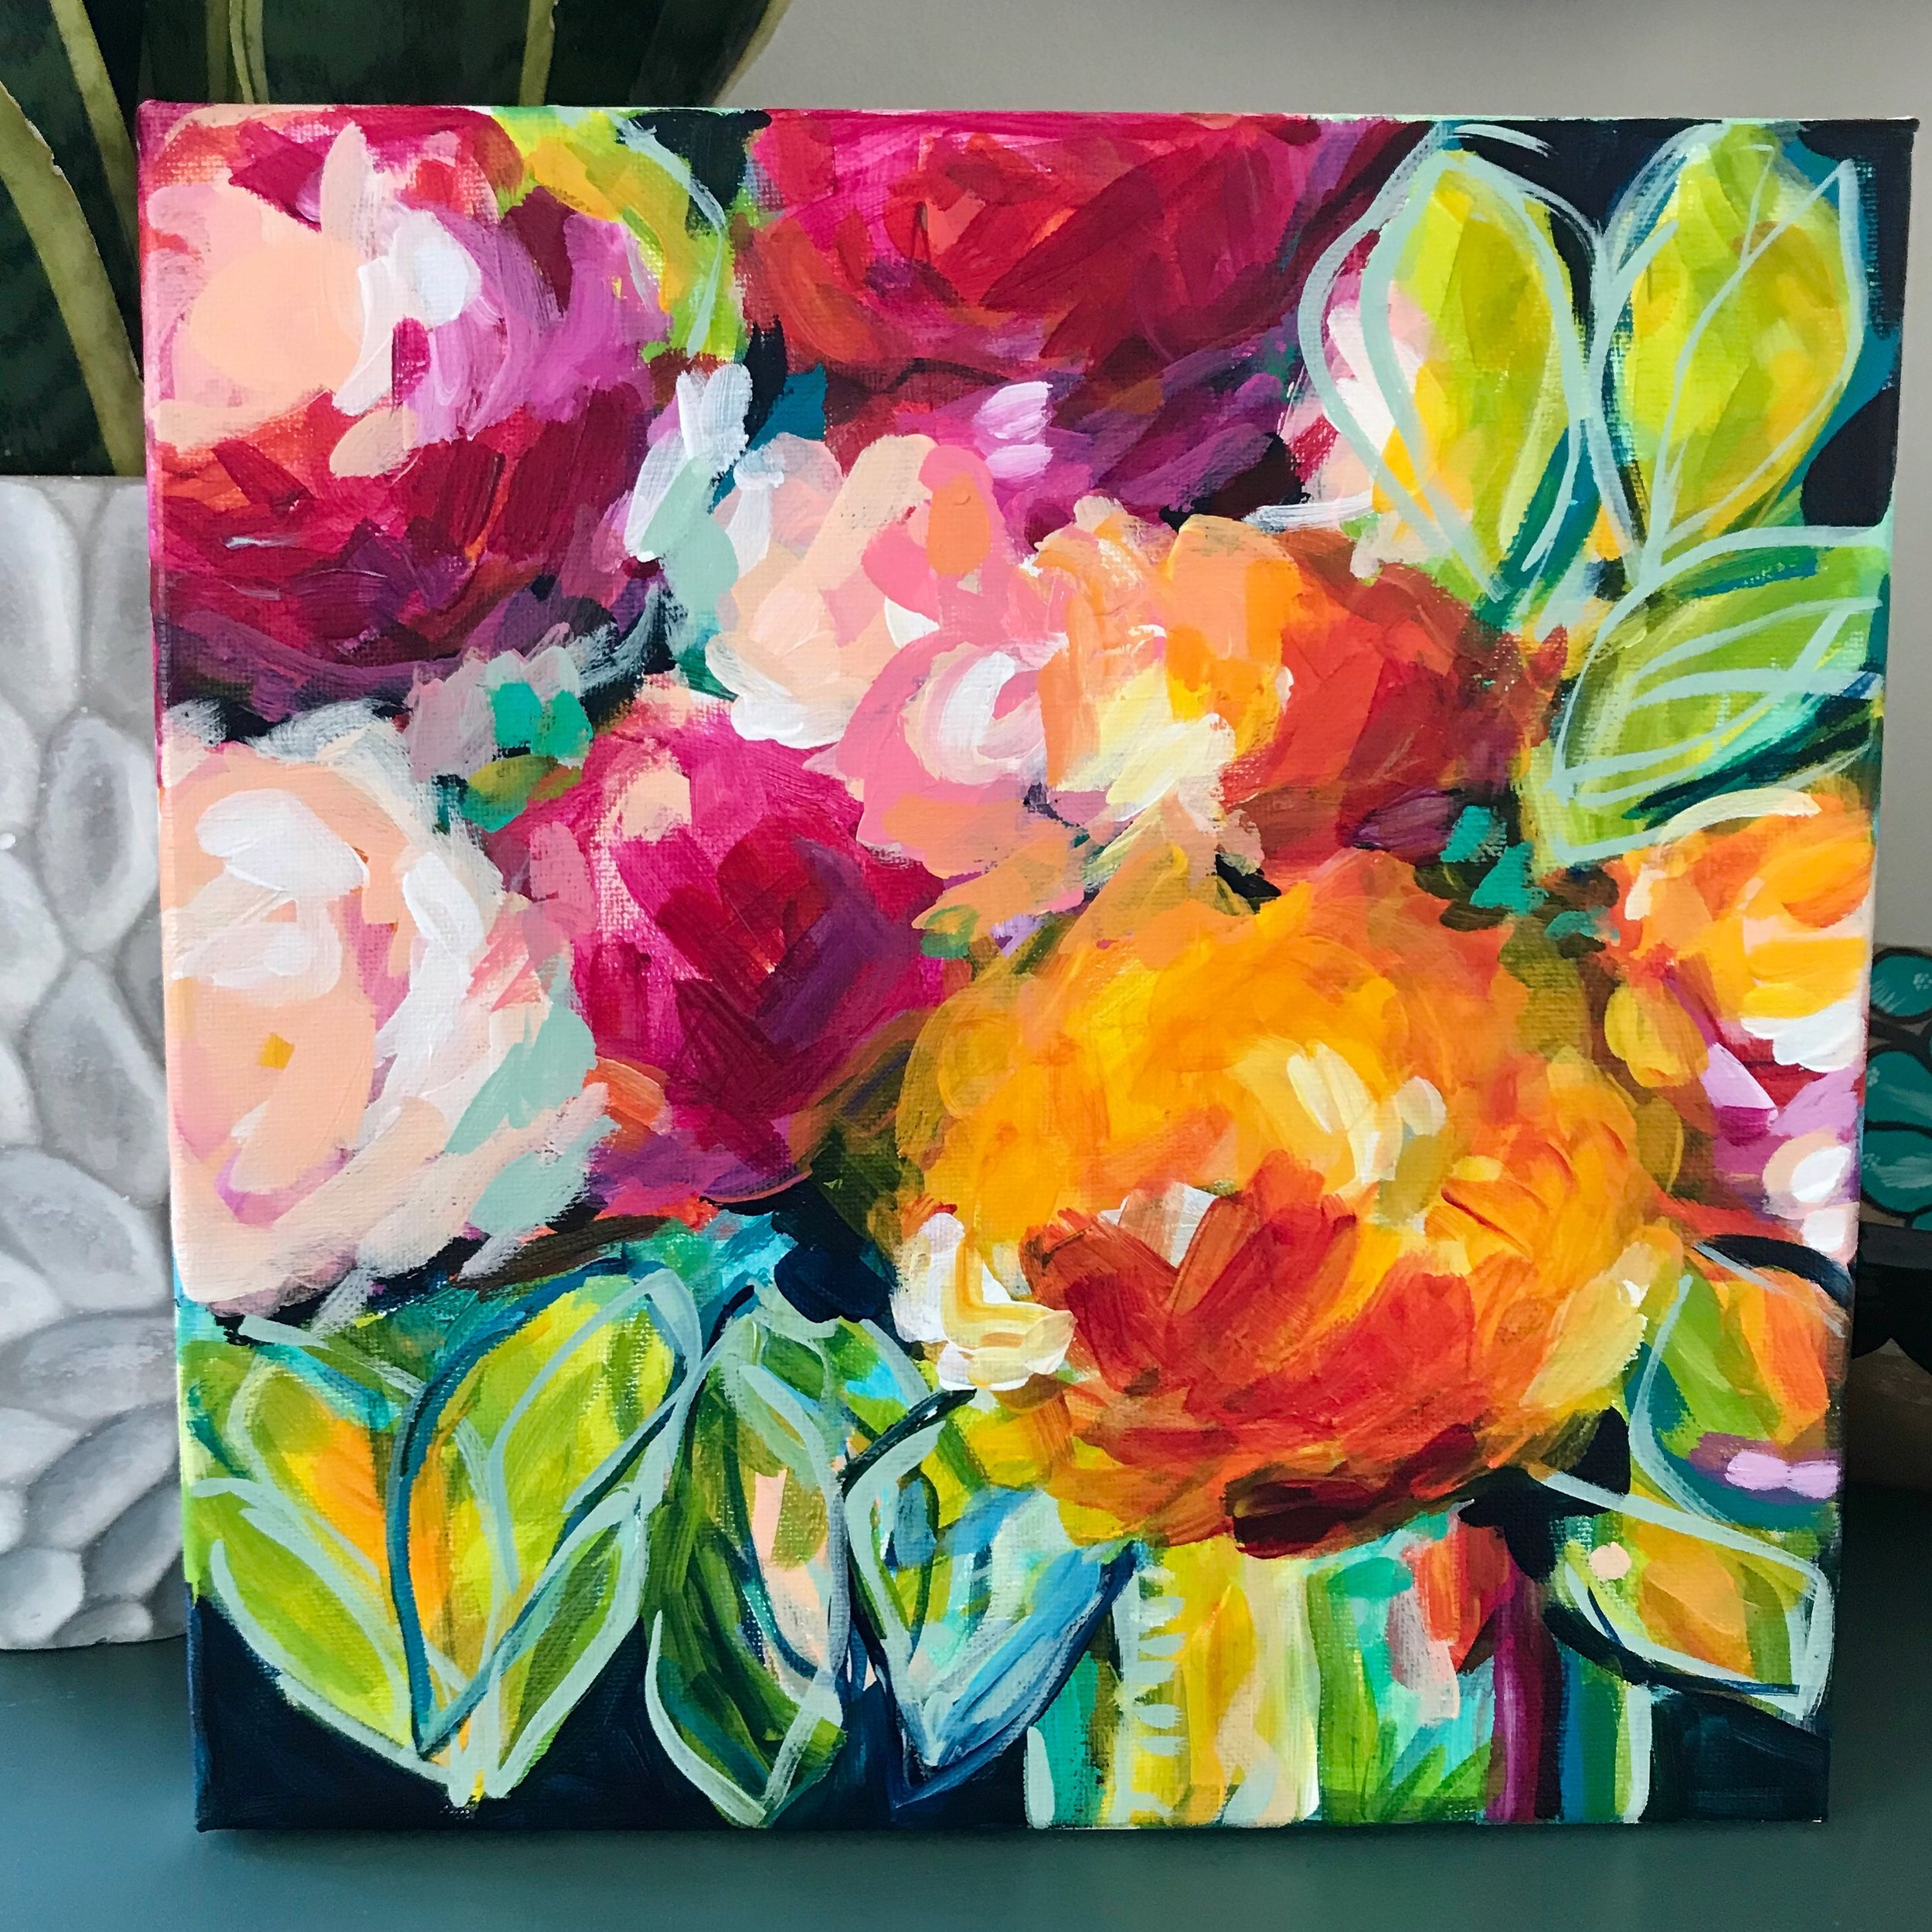 learn_paint_abstract_flowers_34.JPG